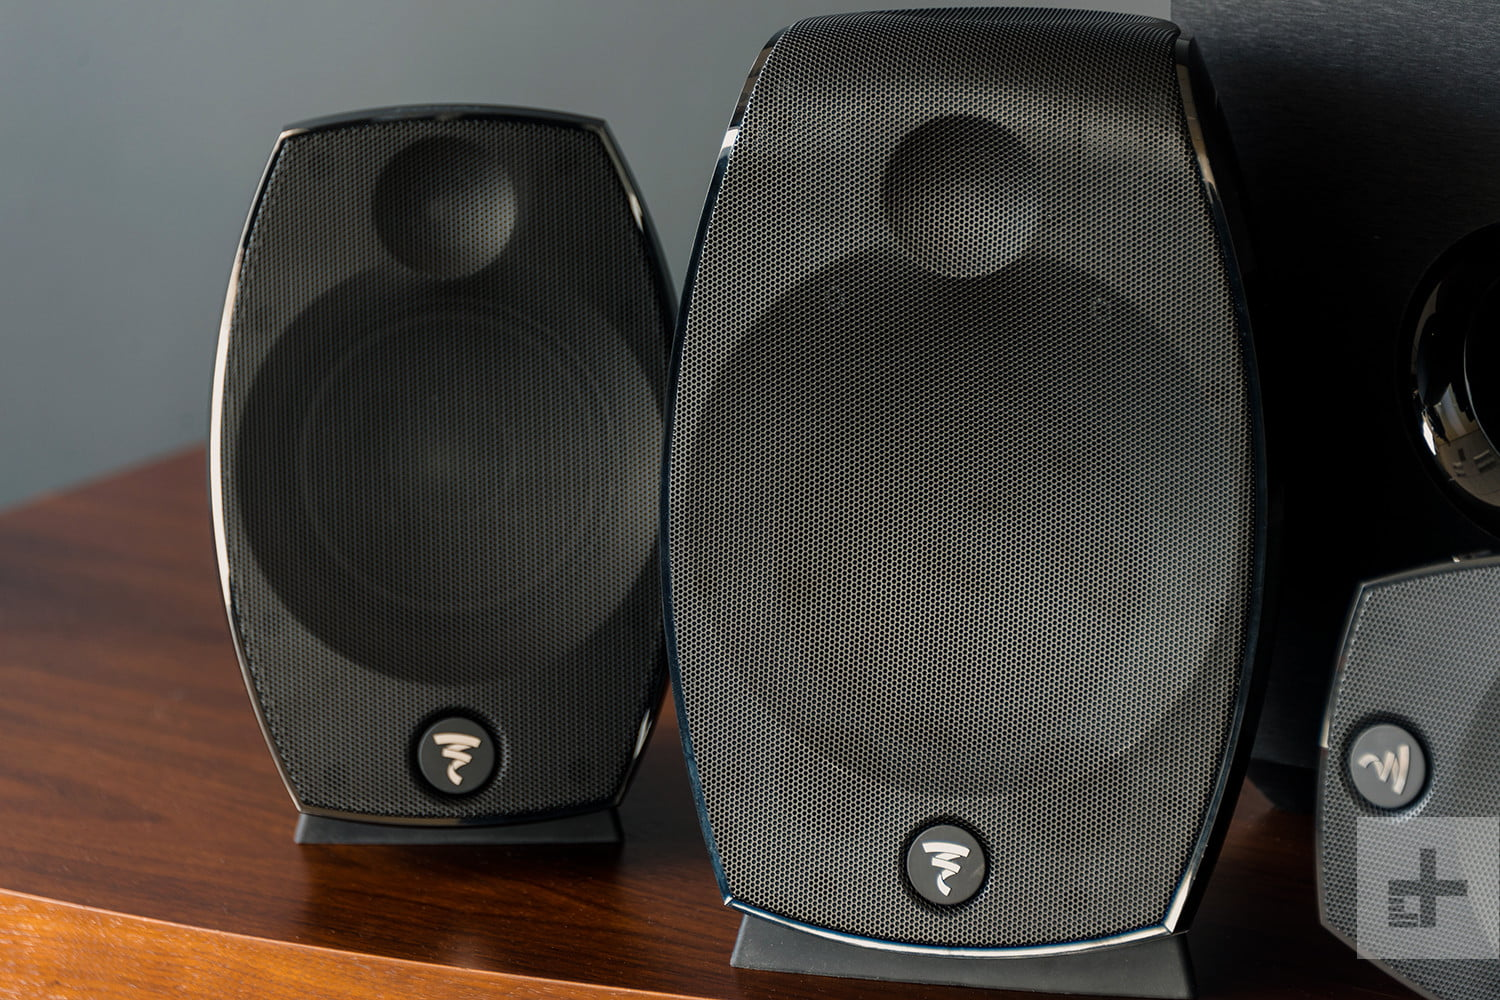 Focal Sib Evo Dolby Atmos 512 Speaker System Review Digital Trends Surround Sound What To Expect When Wiring Your Home For The 21st